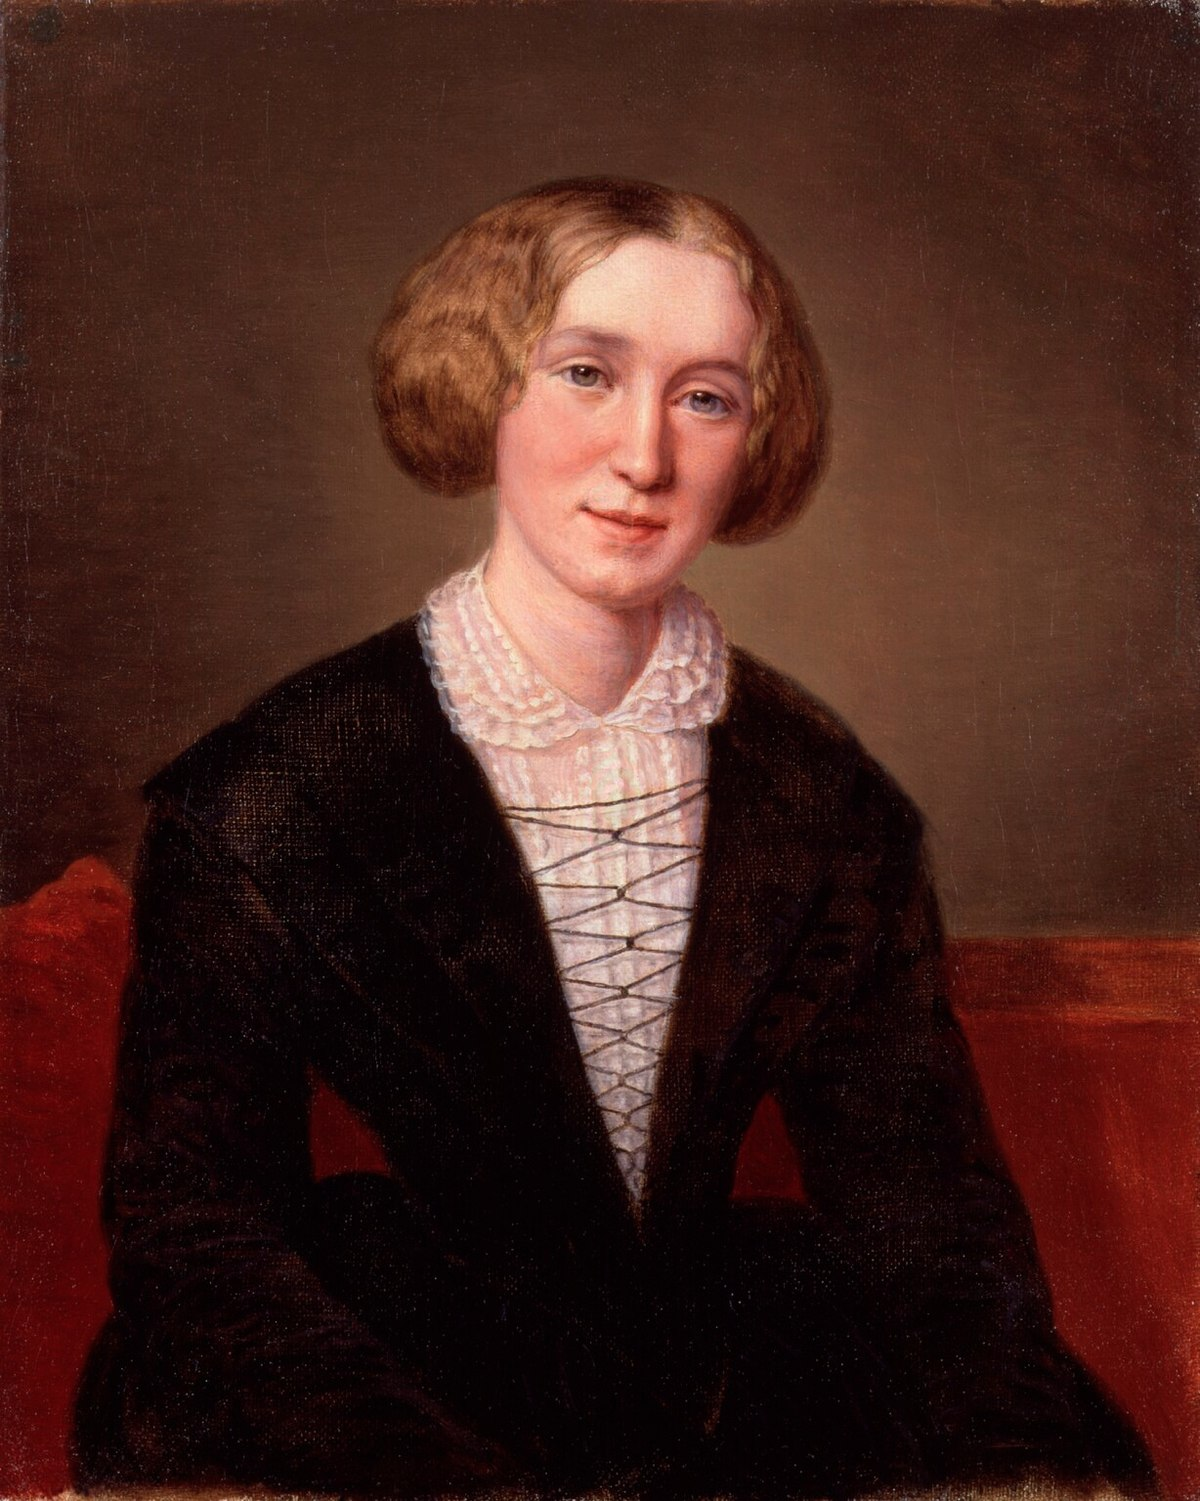 The Realism of George Eliot